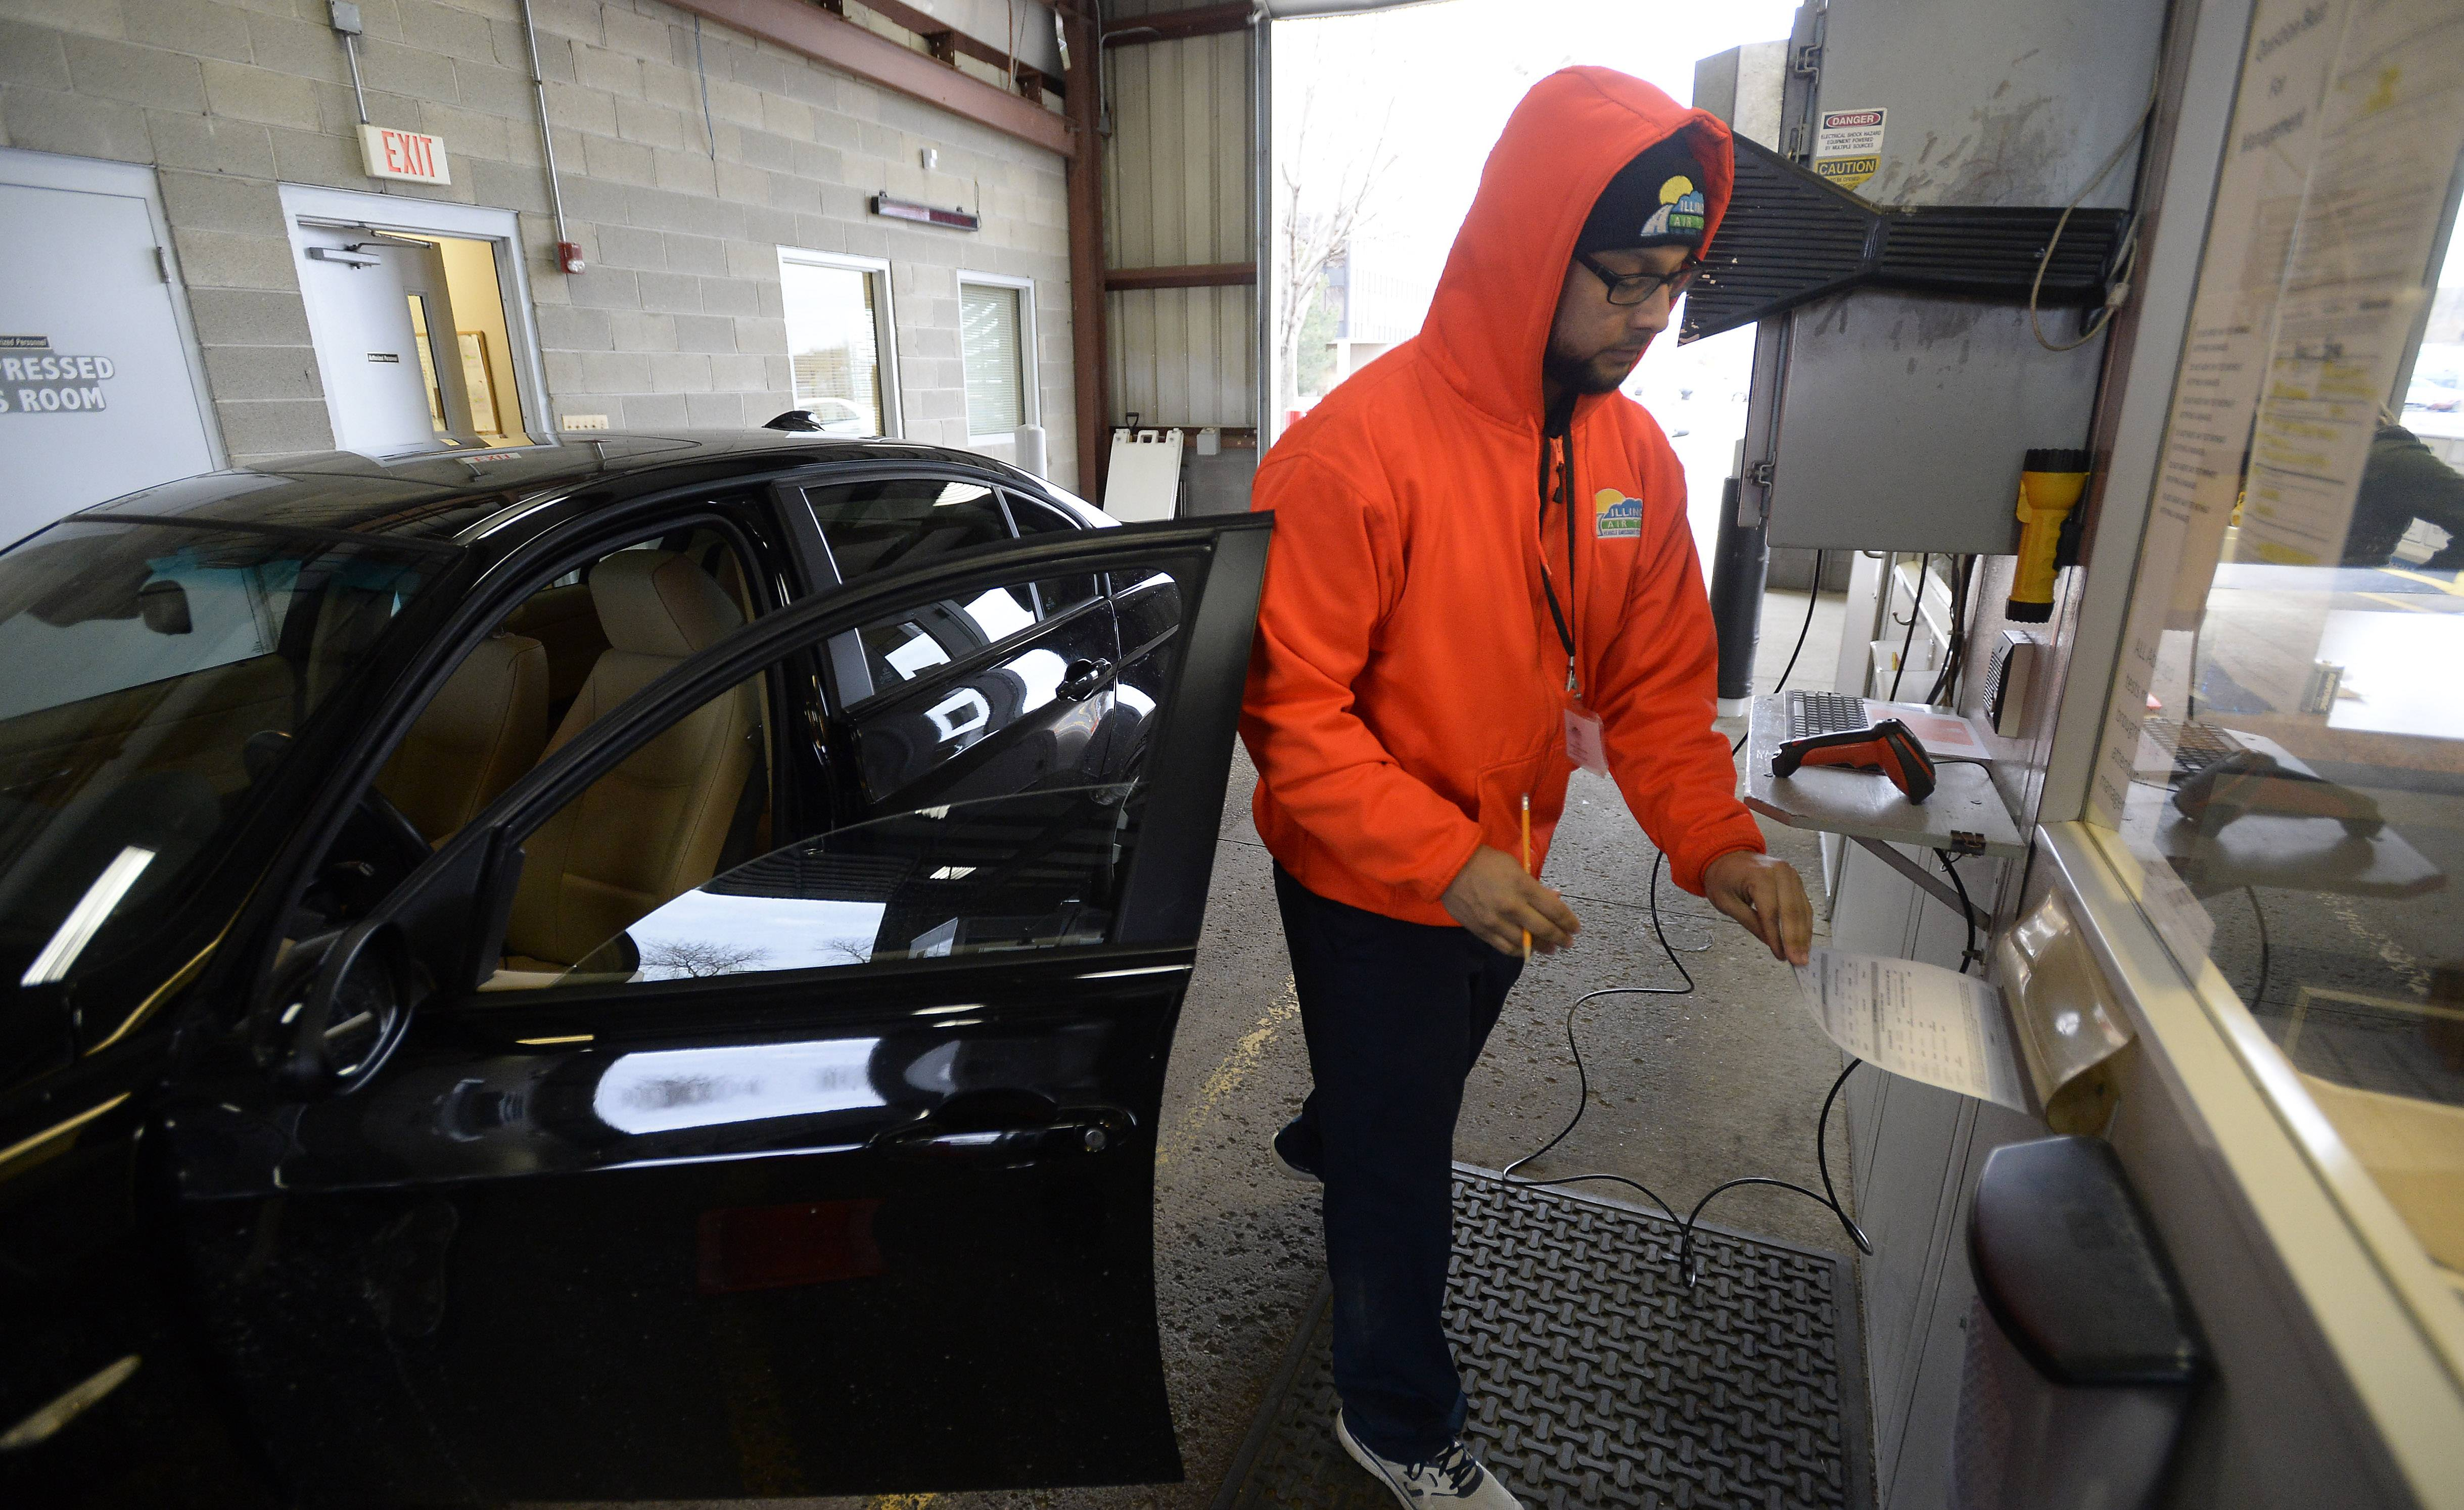 Vince Delmoral, an IEPA traveling customer service representative, attends to a driver who brought a car in for emissions testing Thursday at an Elk Grove Village facility.